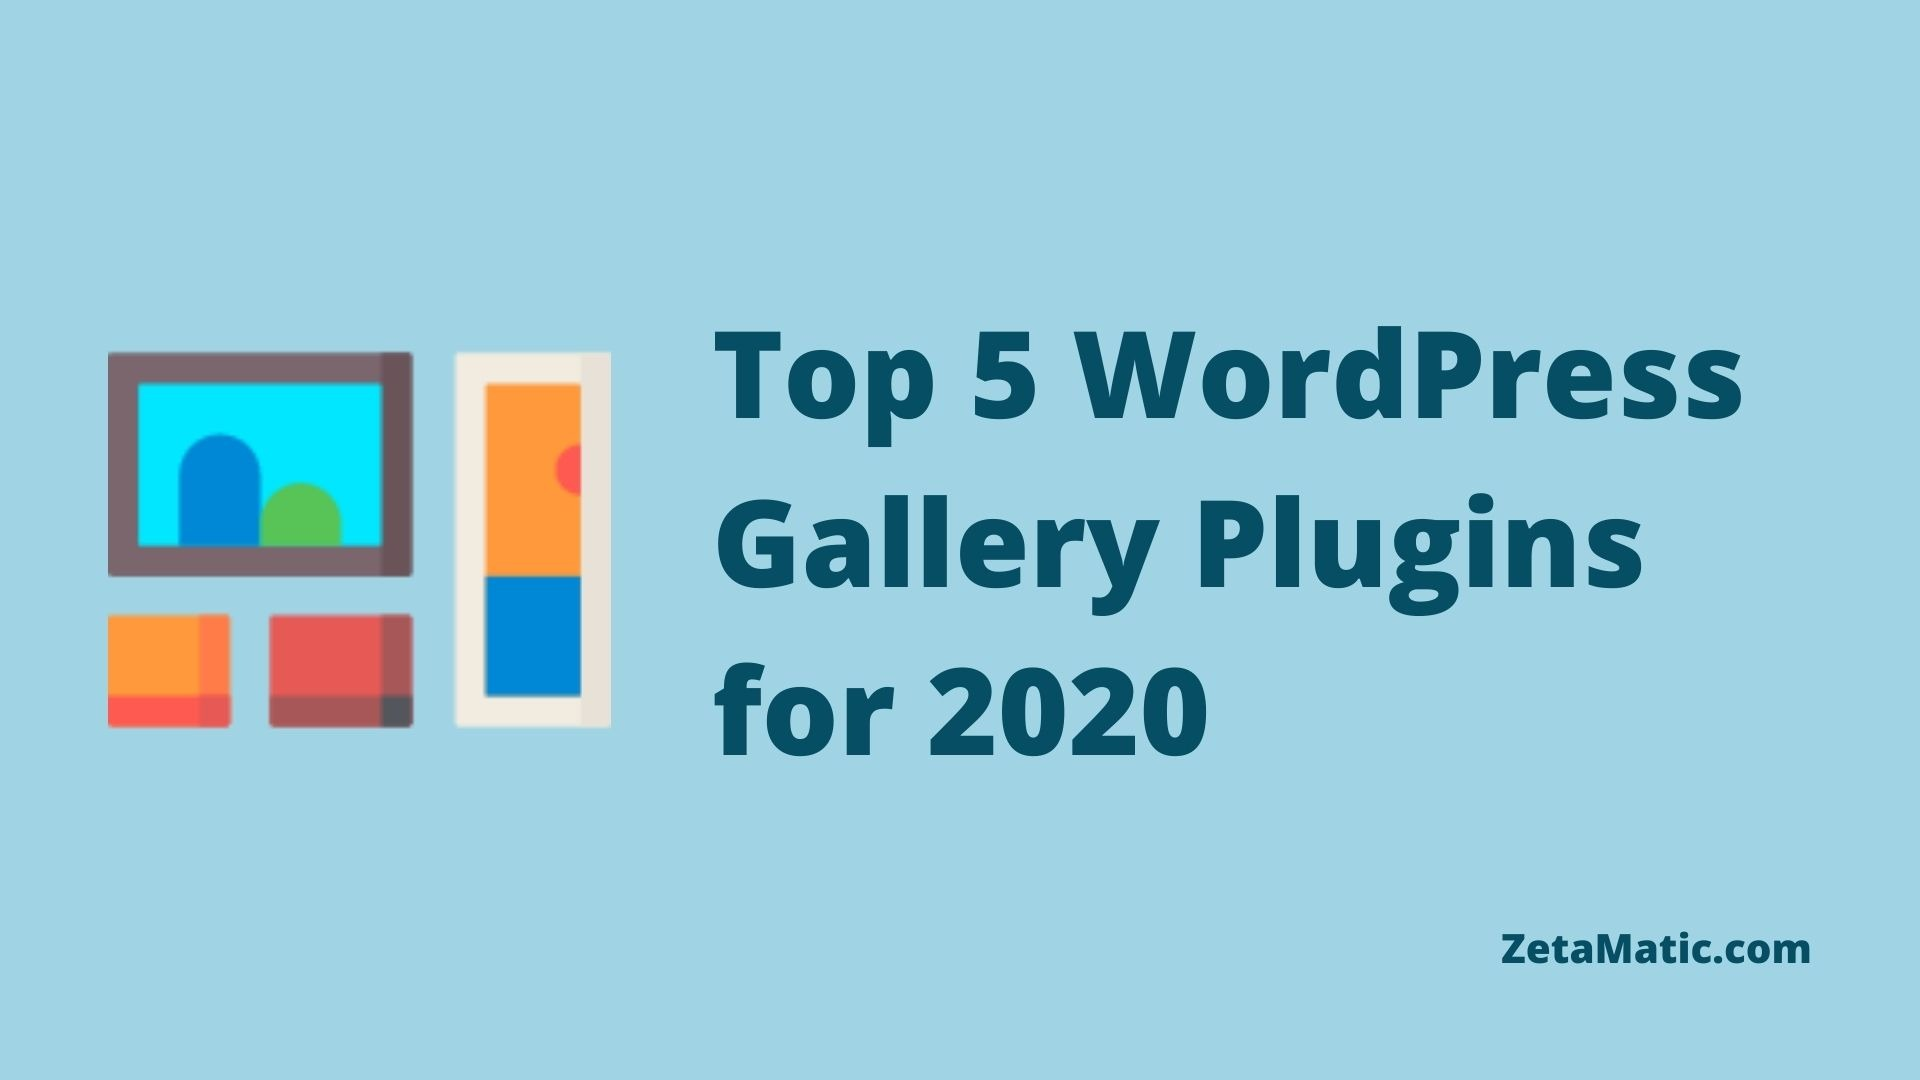 Top 5 WordPress Gallery Plugins for 2020